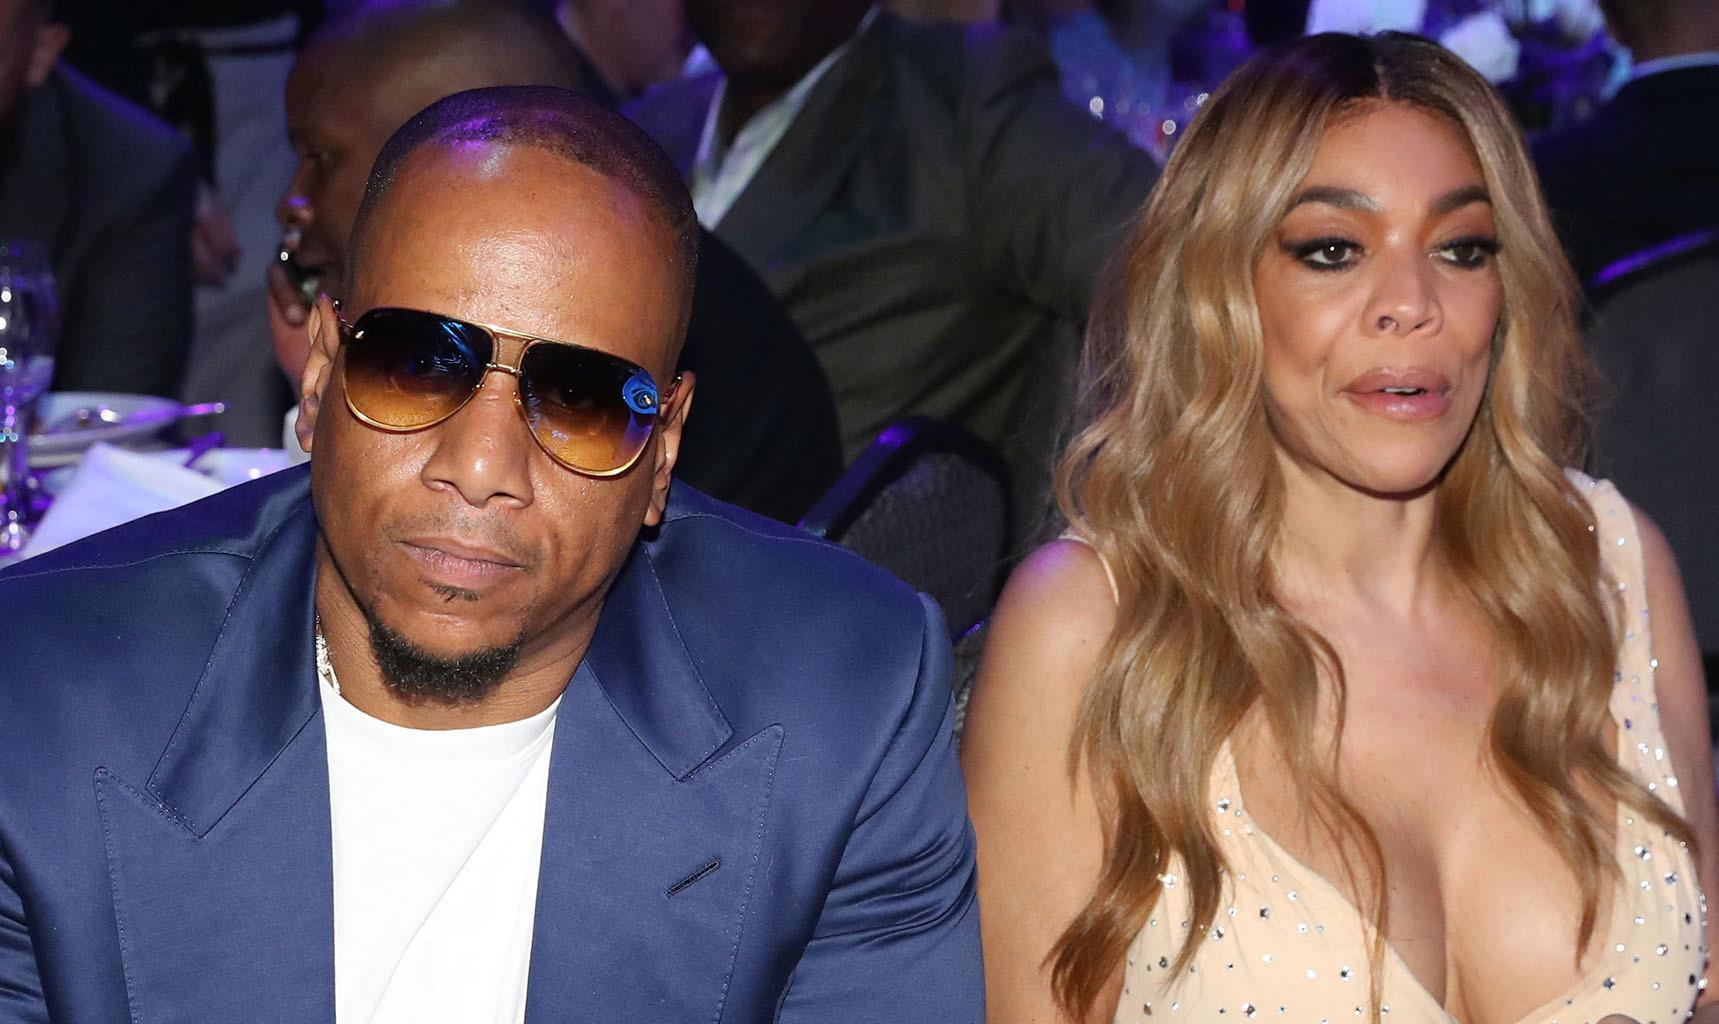 Wendy Williams Finally Confirms Kevin Hunter 'Had A Baby With Another Woman'